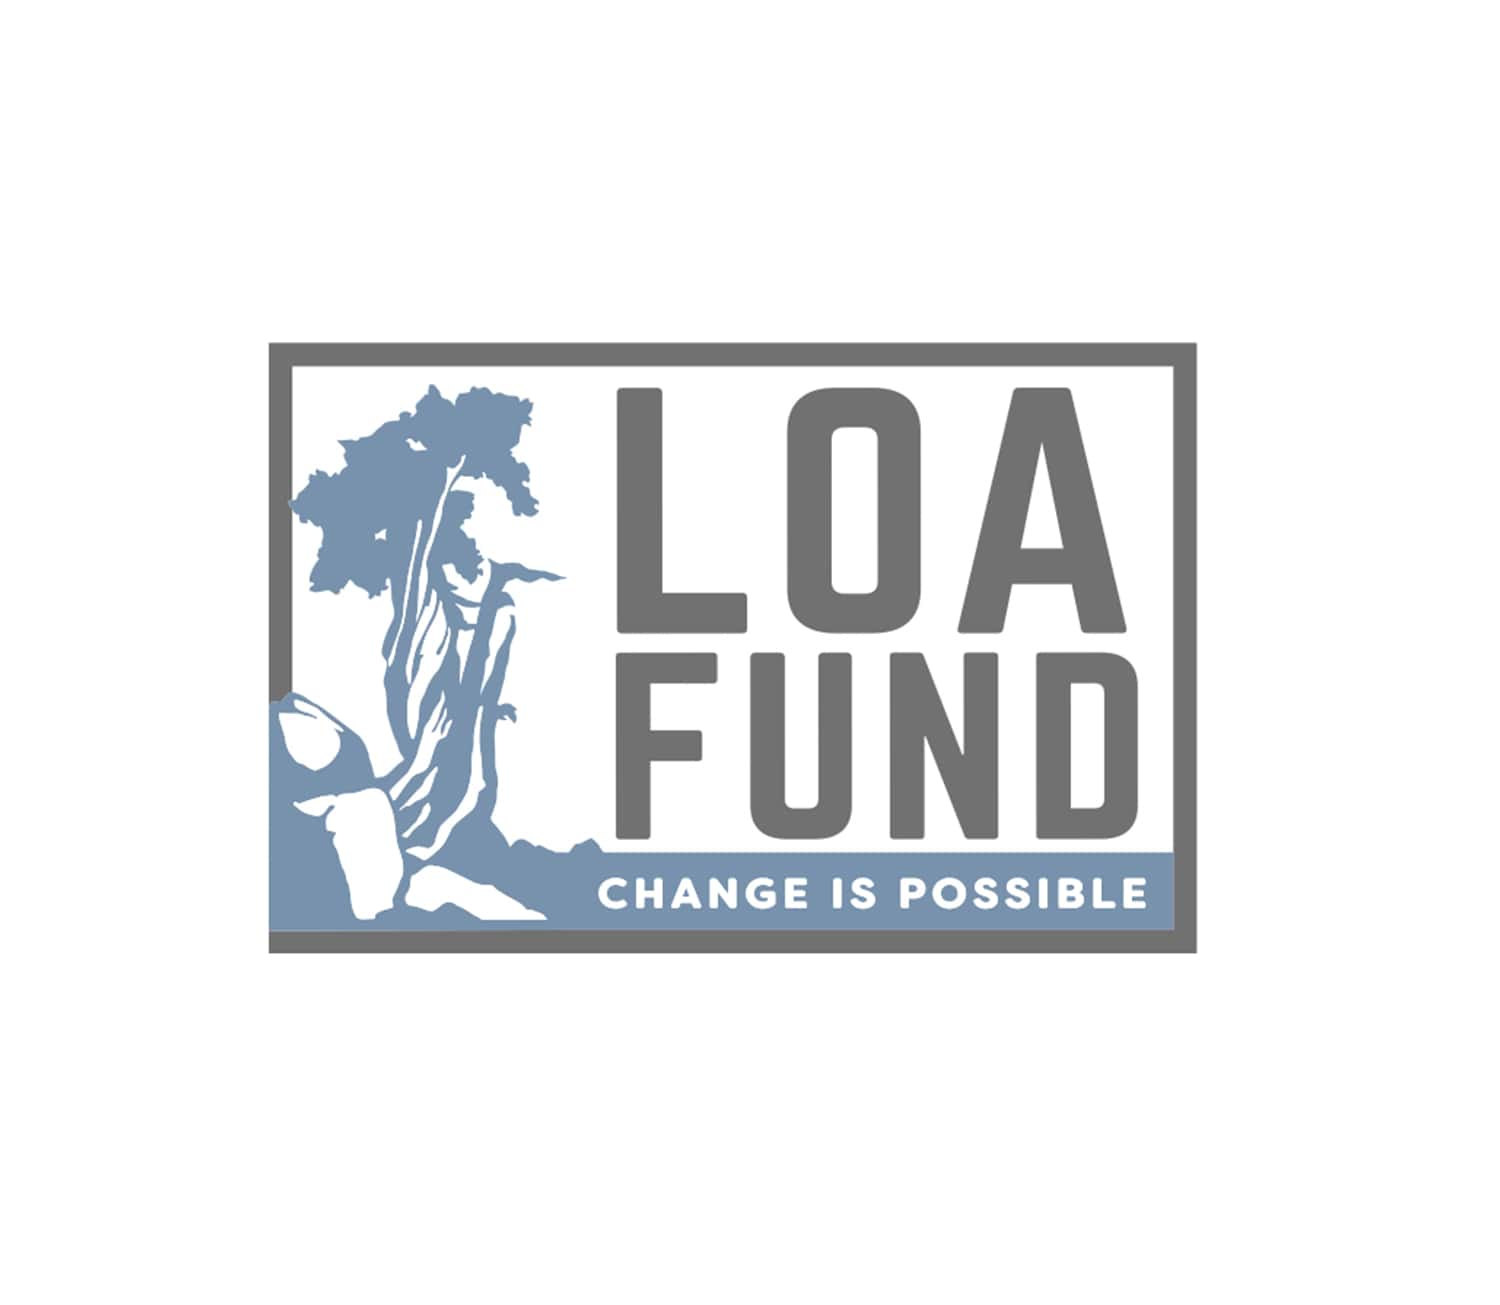 Loa Fund : Change is Possible